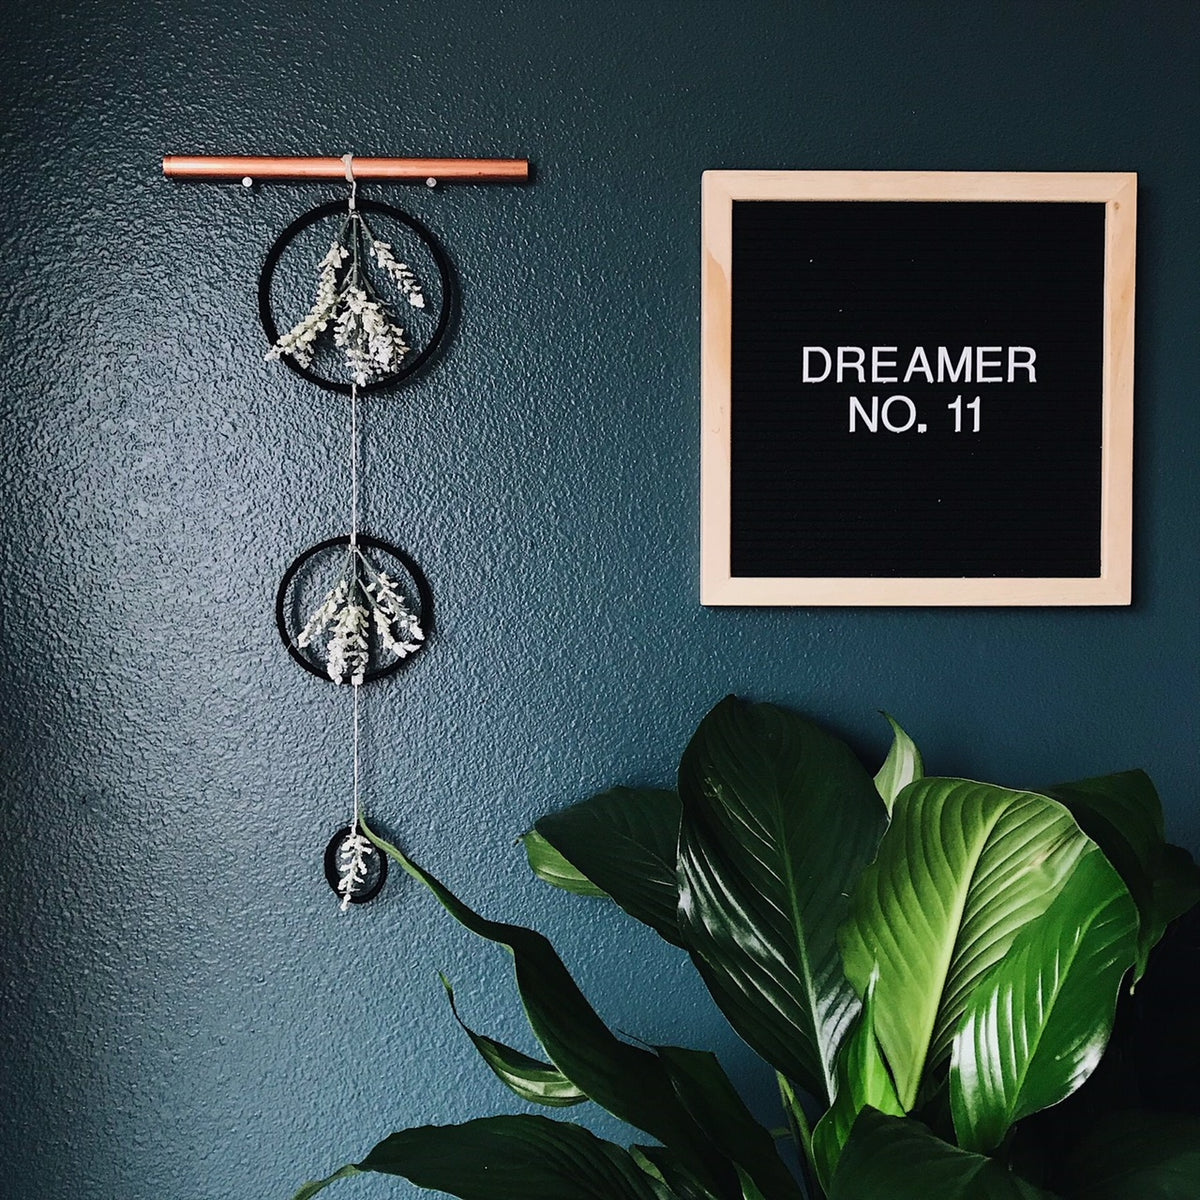 Dreamer No. 11 | 100 Days of Dreamers